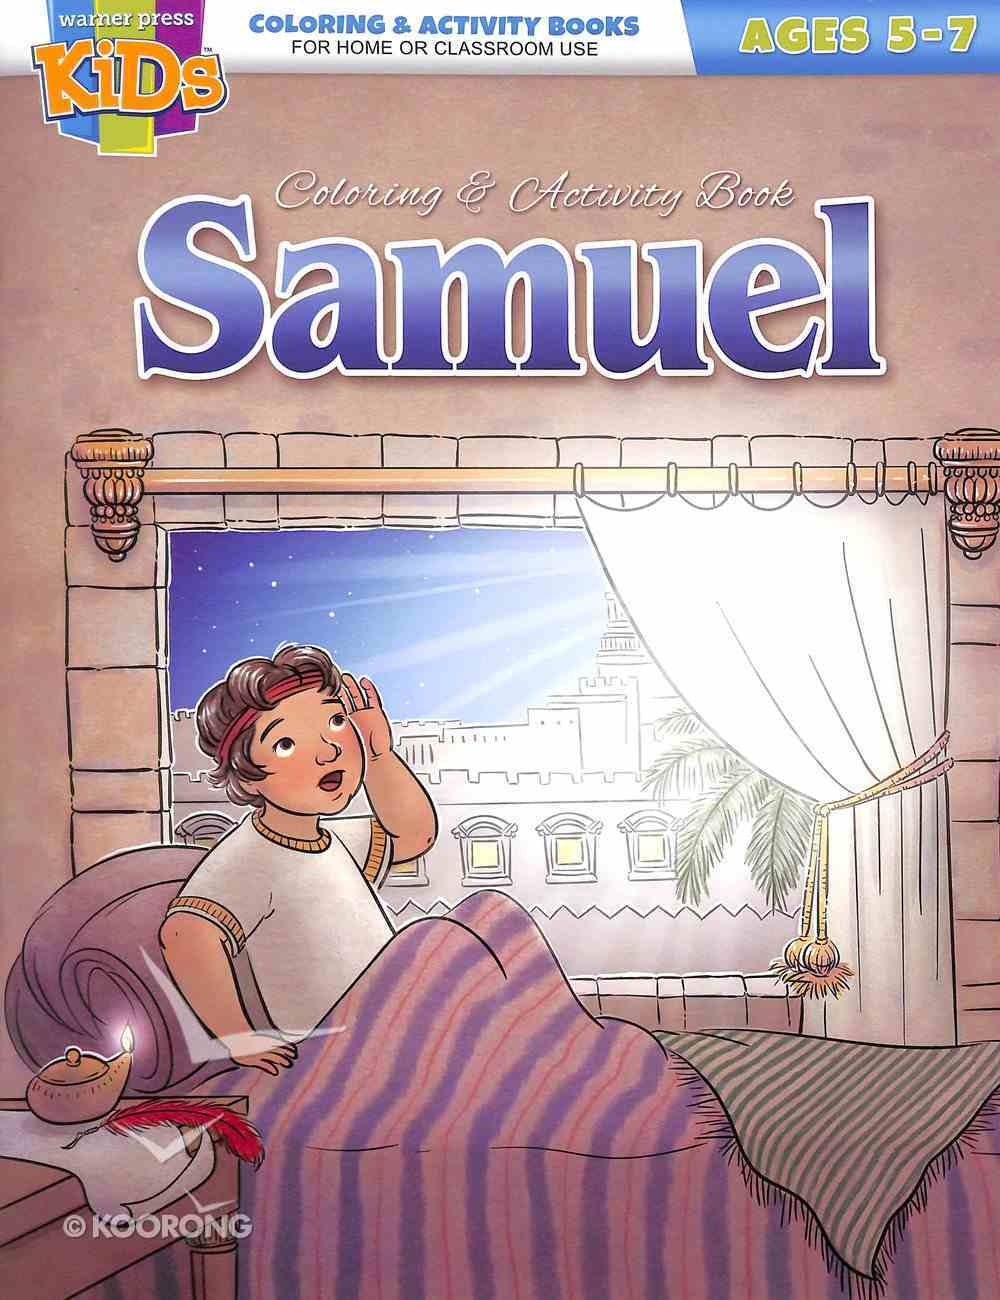 Samuel (Ages 5-7 Reproducible) (Warner Press Colouring & Activity Books Series) Paperback